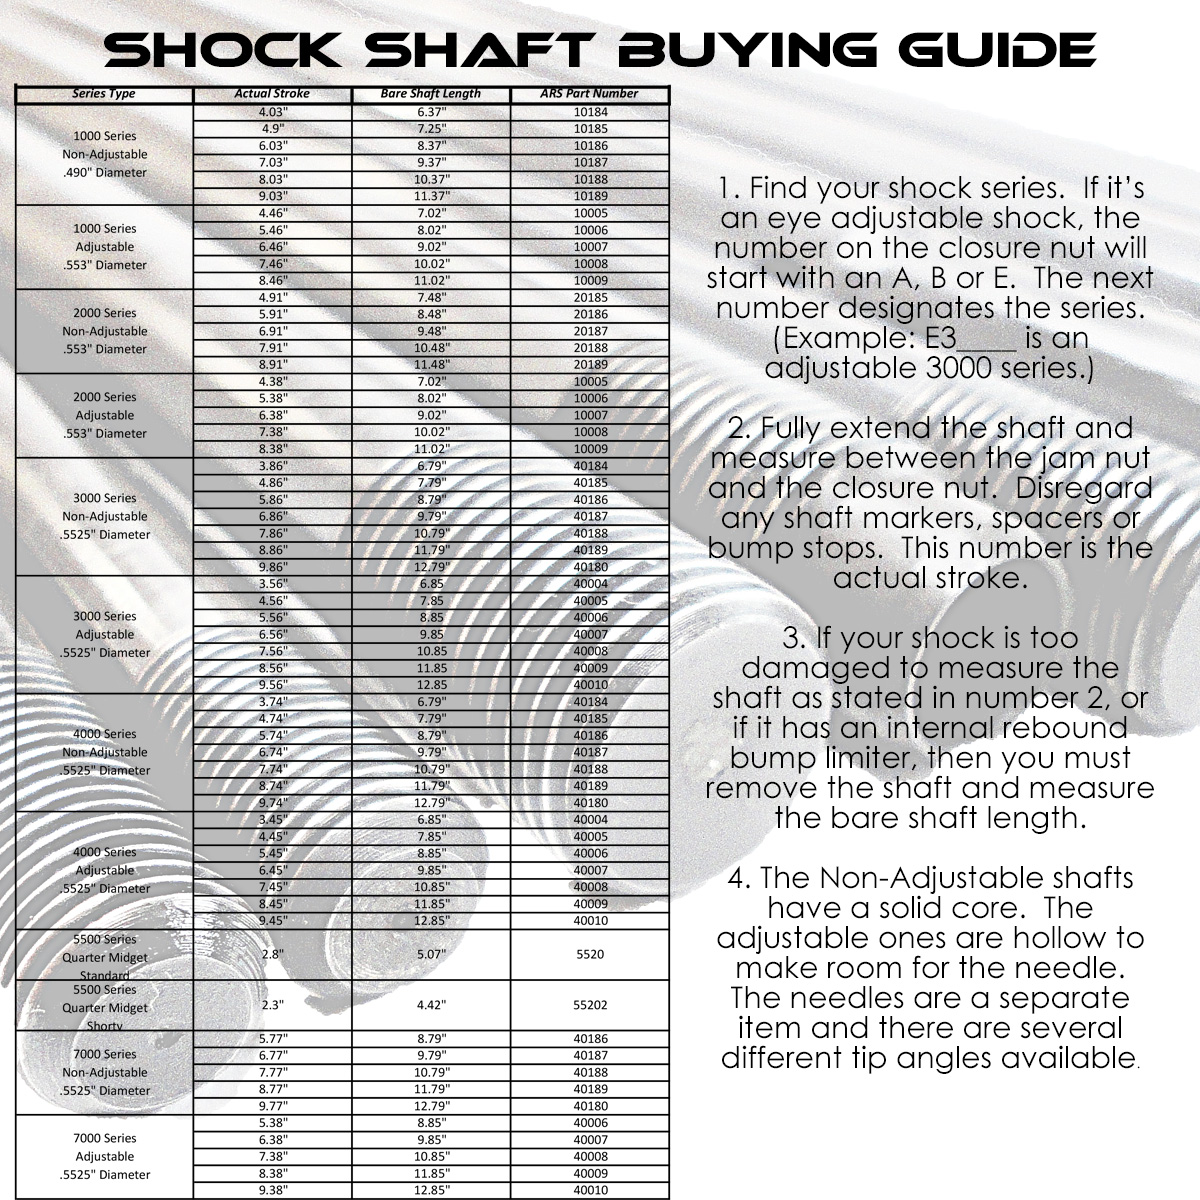 Shock Shaft Buying Guide